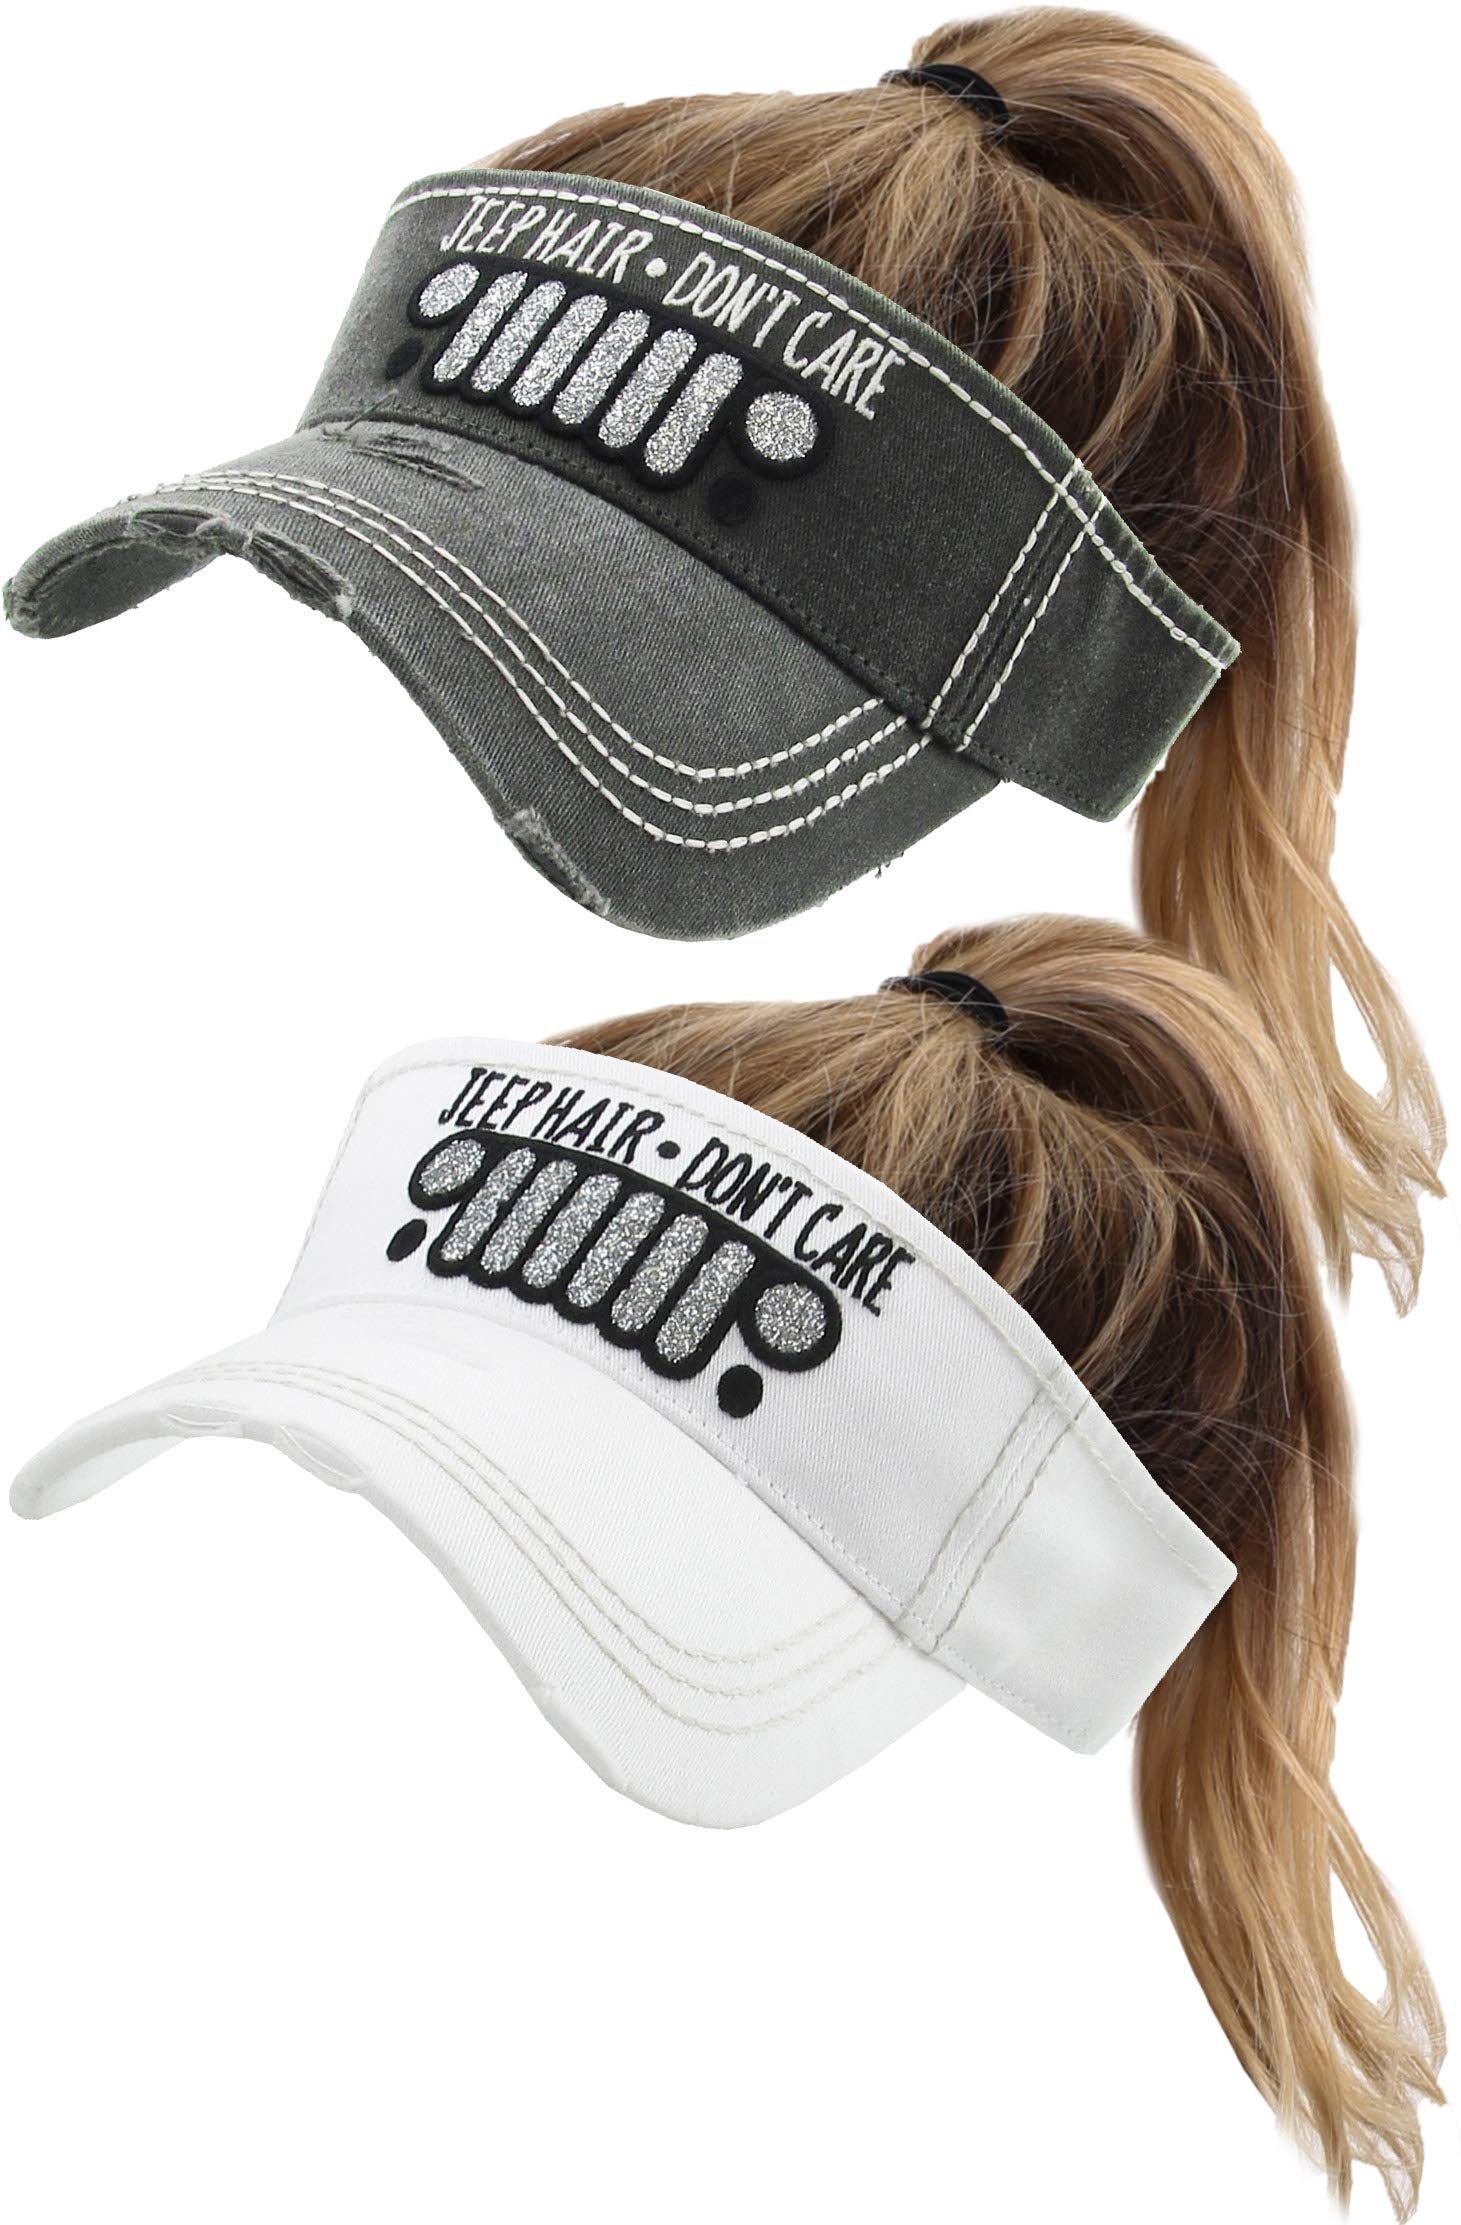 H-201-2-JHDC0609 Ponytail Visor 2-Pack: Jeep Hair - Black and White